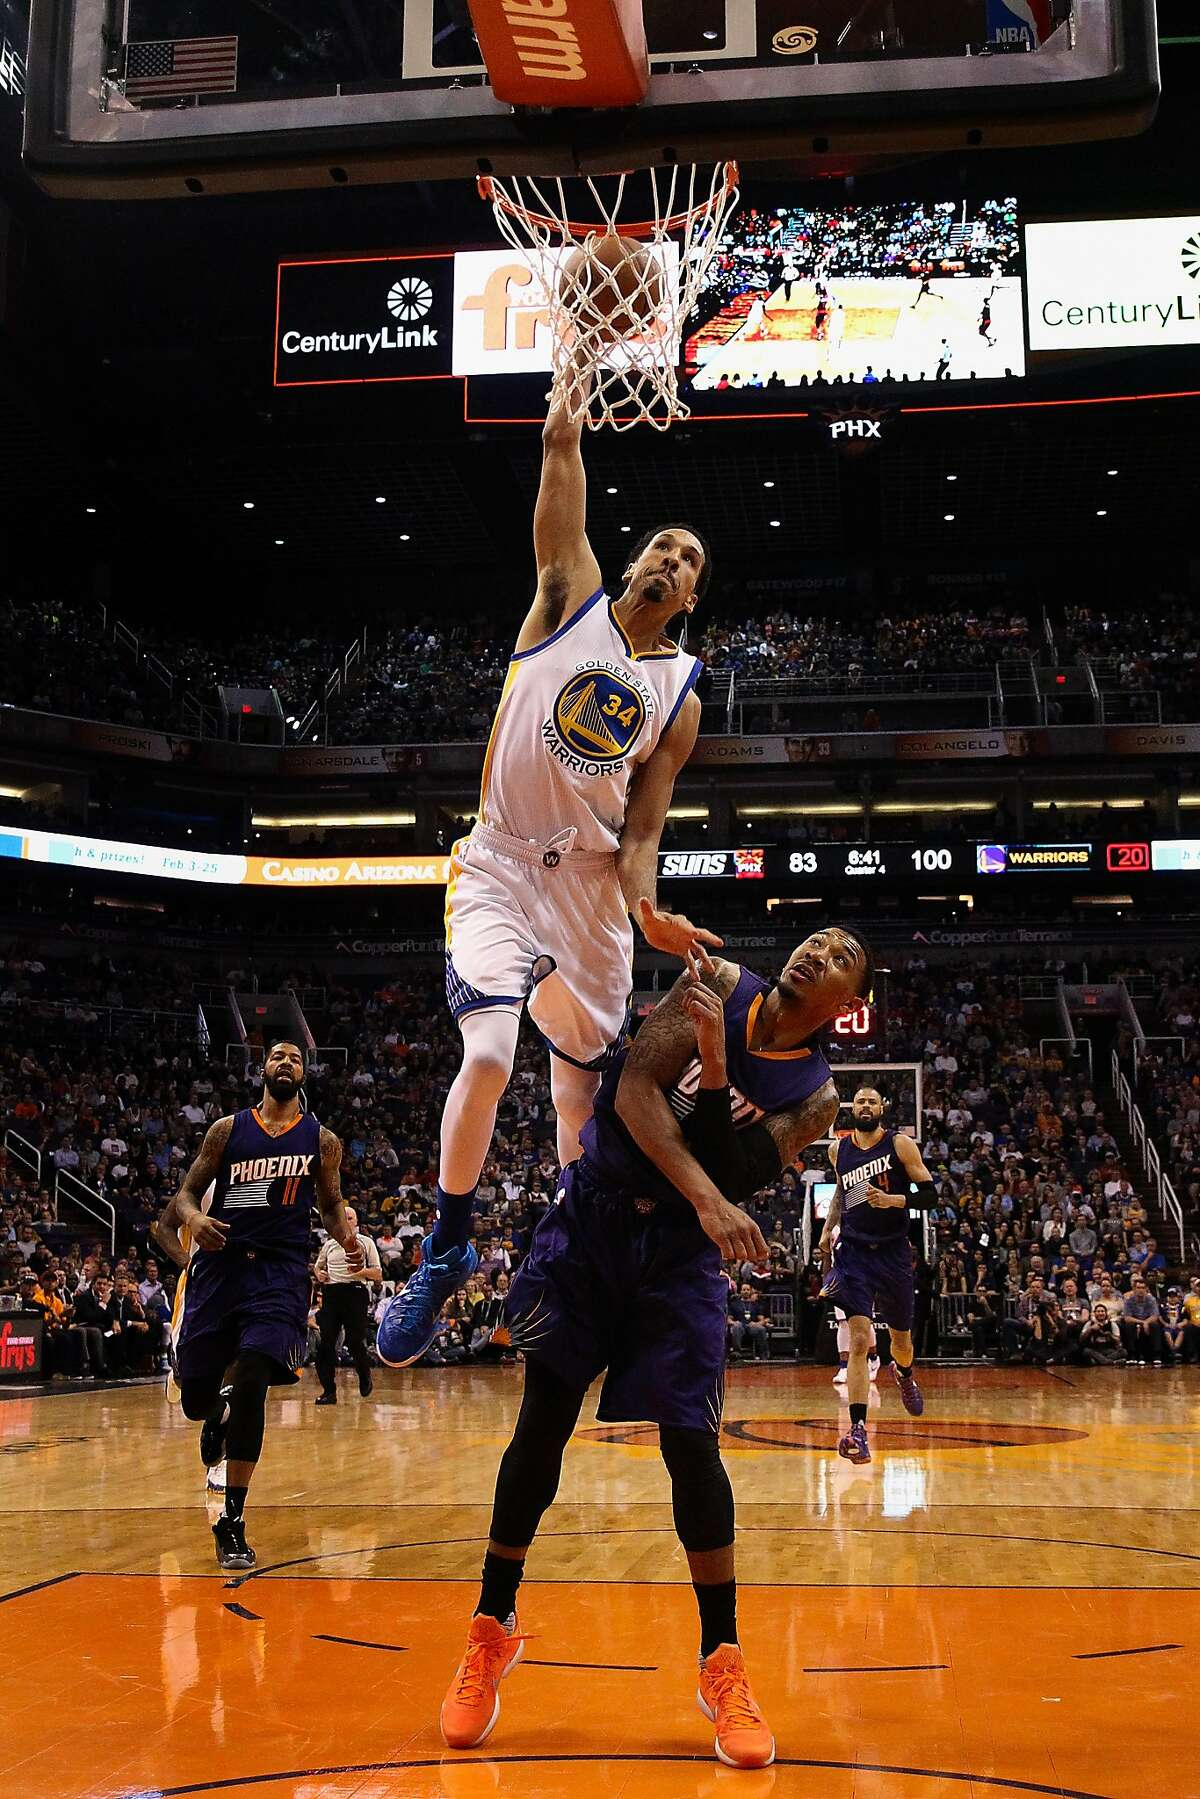 PHOENIX, AZ - FEBRUARY 10: Shaun Livingston #34 of the Golden State Warriors attempts a slam dunk over Orlando Johnson #0 of the Phoenix Suns during the second half of the NBA game at Talking Stick Resort Arena on February 10, 2016 in Phoenix, Arizona. The Warriors defeated the Suns 112-104. NOTE TO USER: User expressly acknowledges and agrees that, by downloading and or using this photograph, User is consenting to the terms and conditions of the Getty Images License Agreement. (Photo by Christian Petersen/Getty Images)